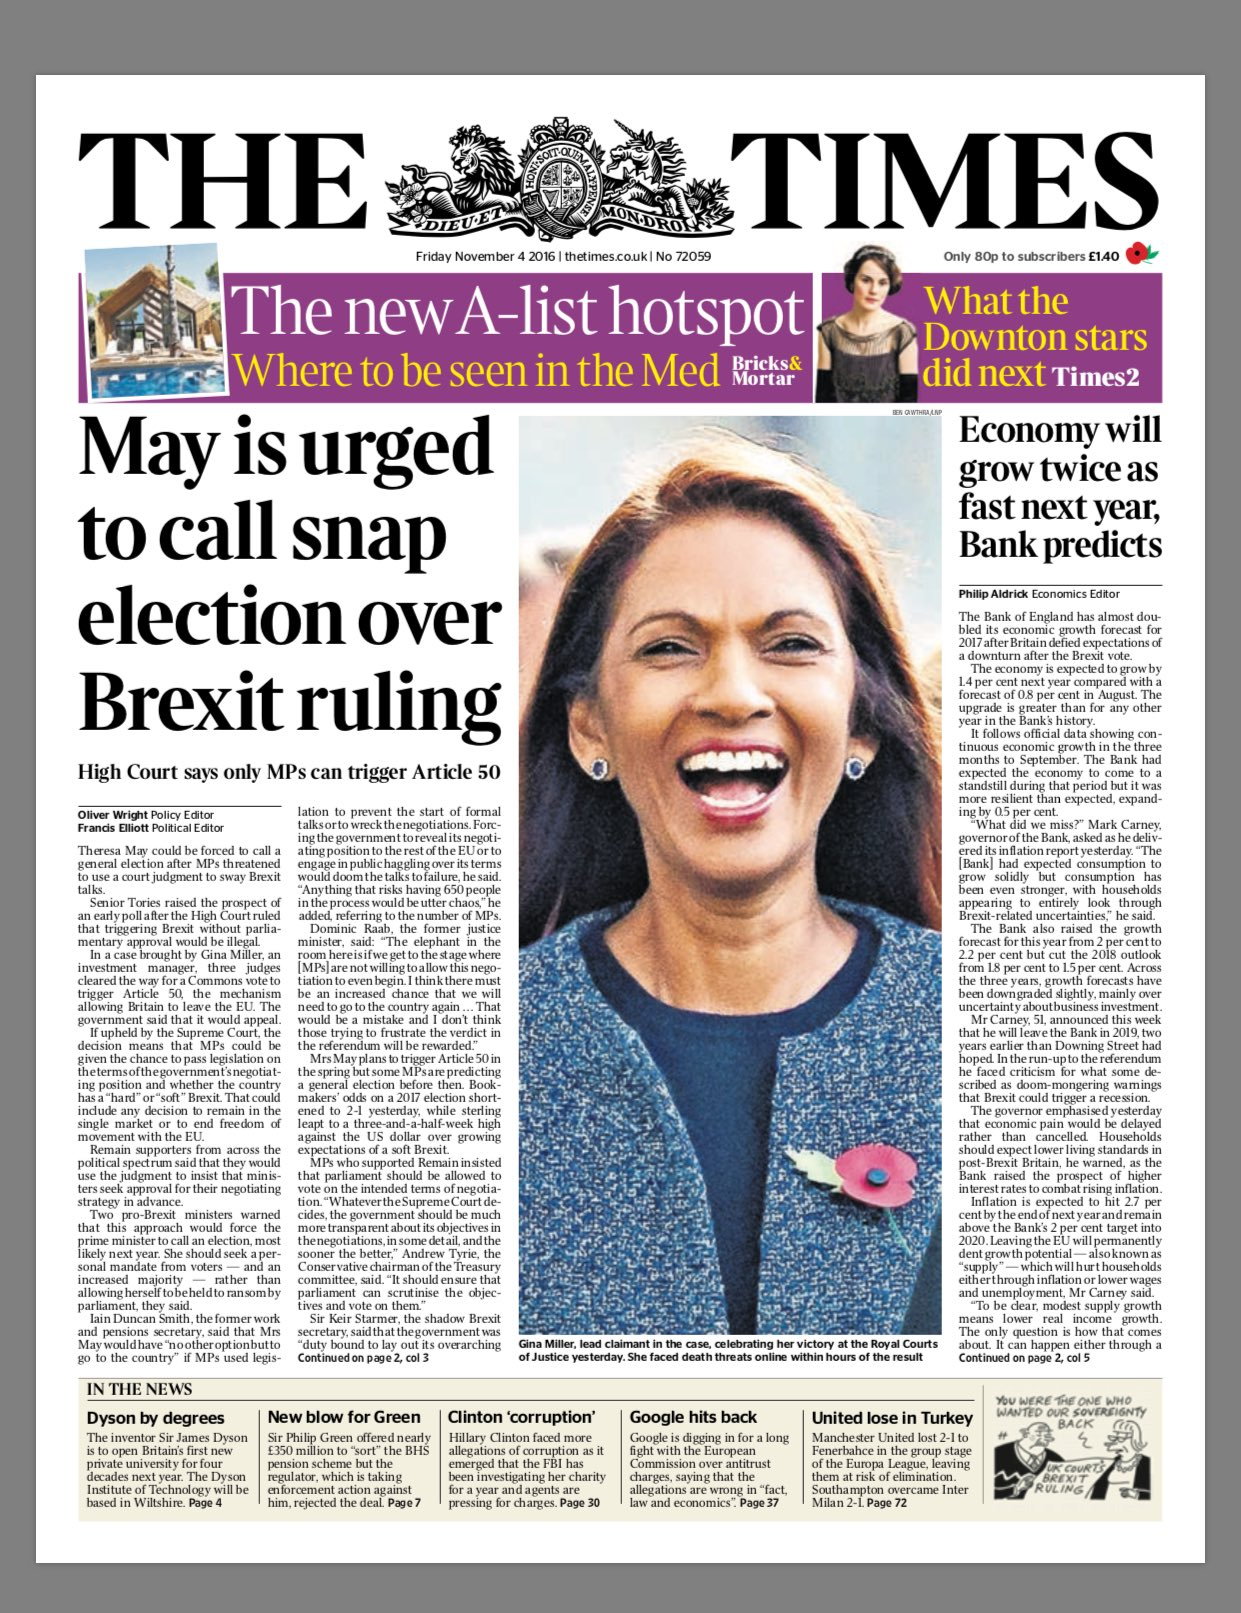 Times front page after High Court ruling